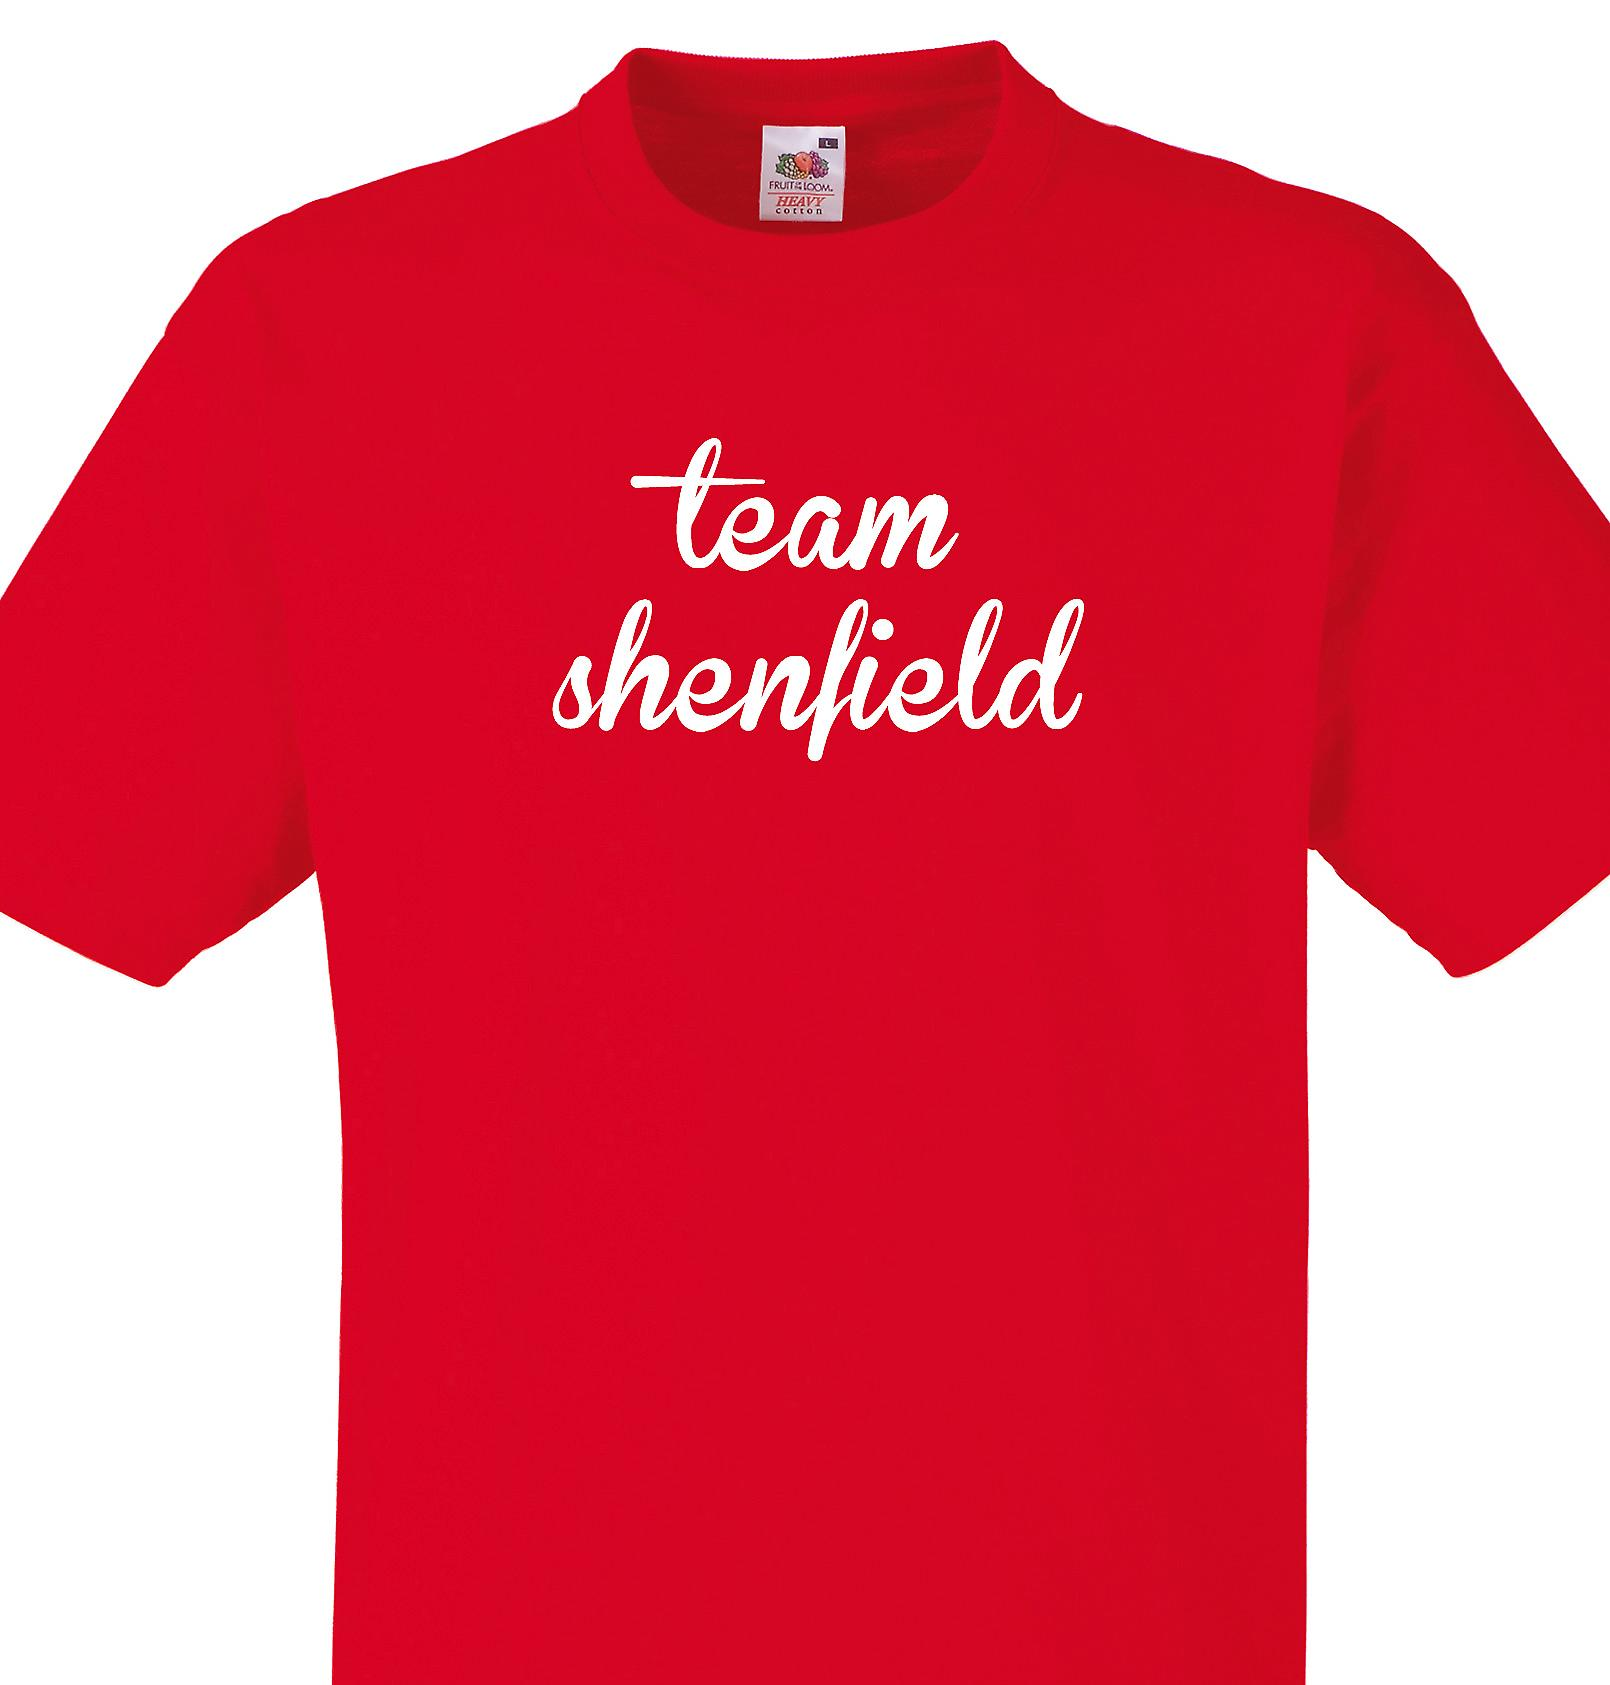 Team Shenfield Red T shirt